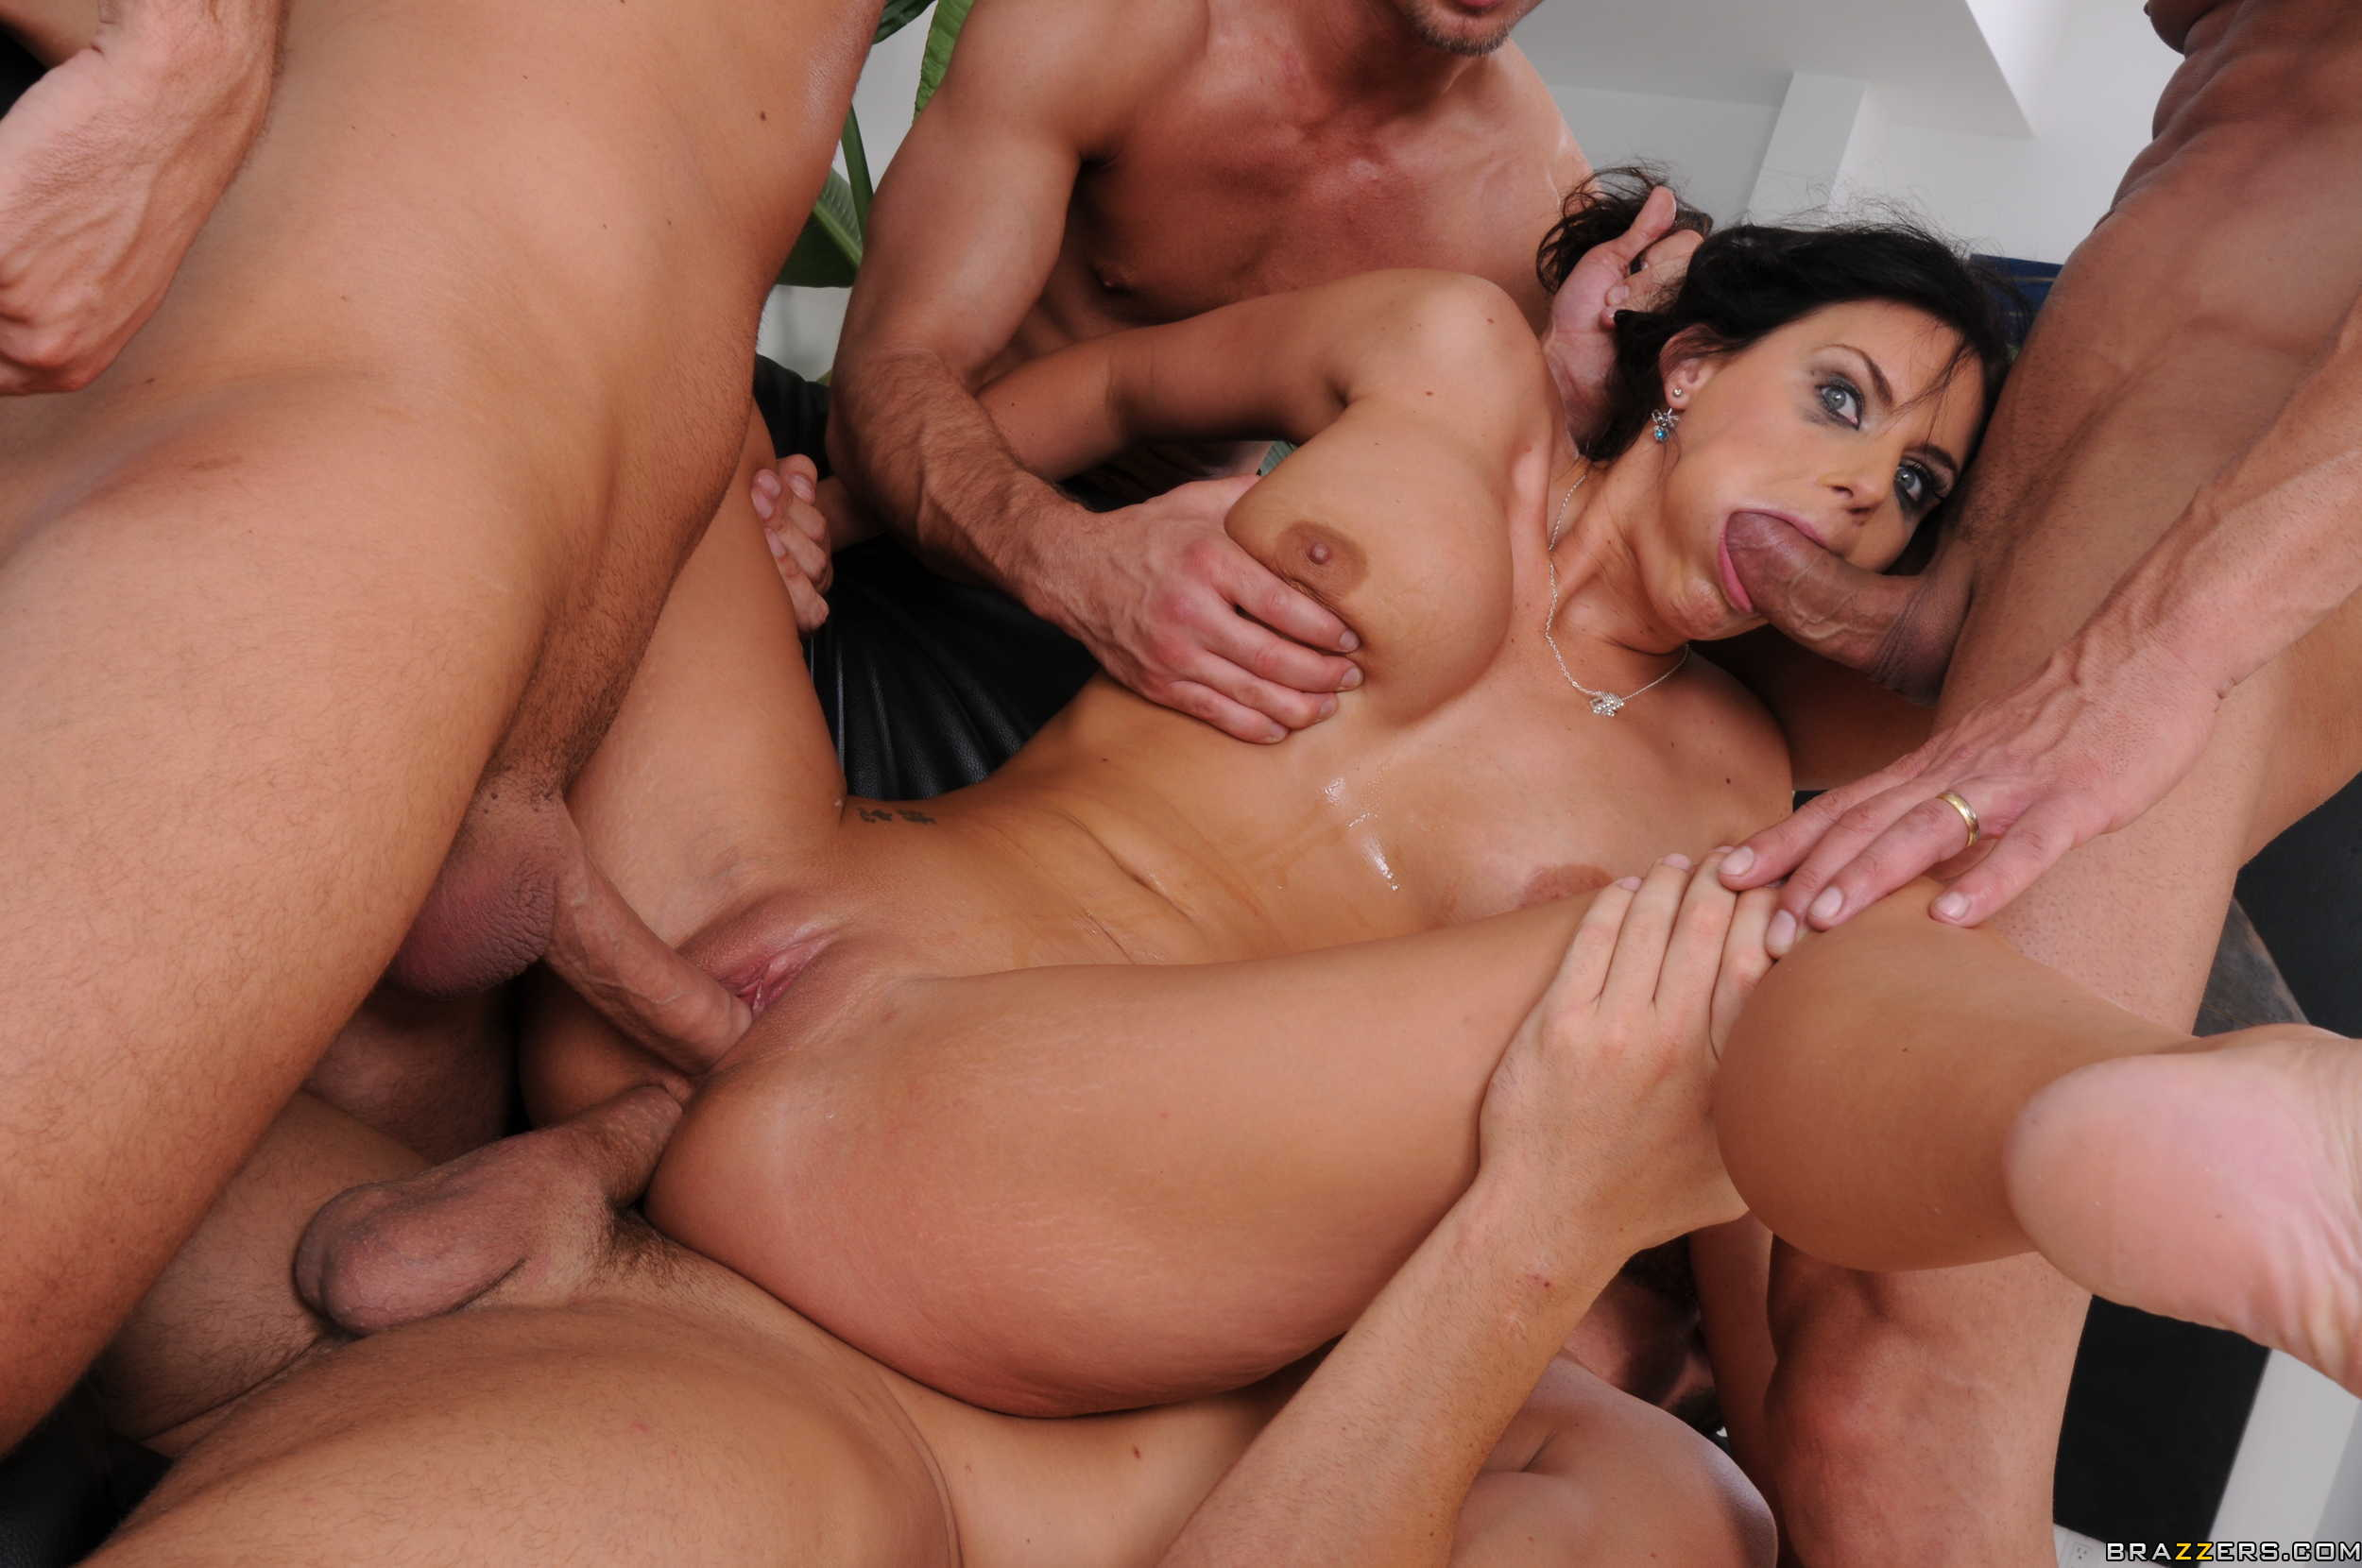 Opinion gang bang milf videos sorry, does